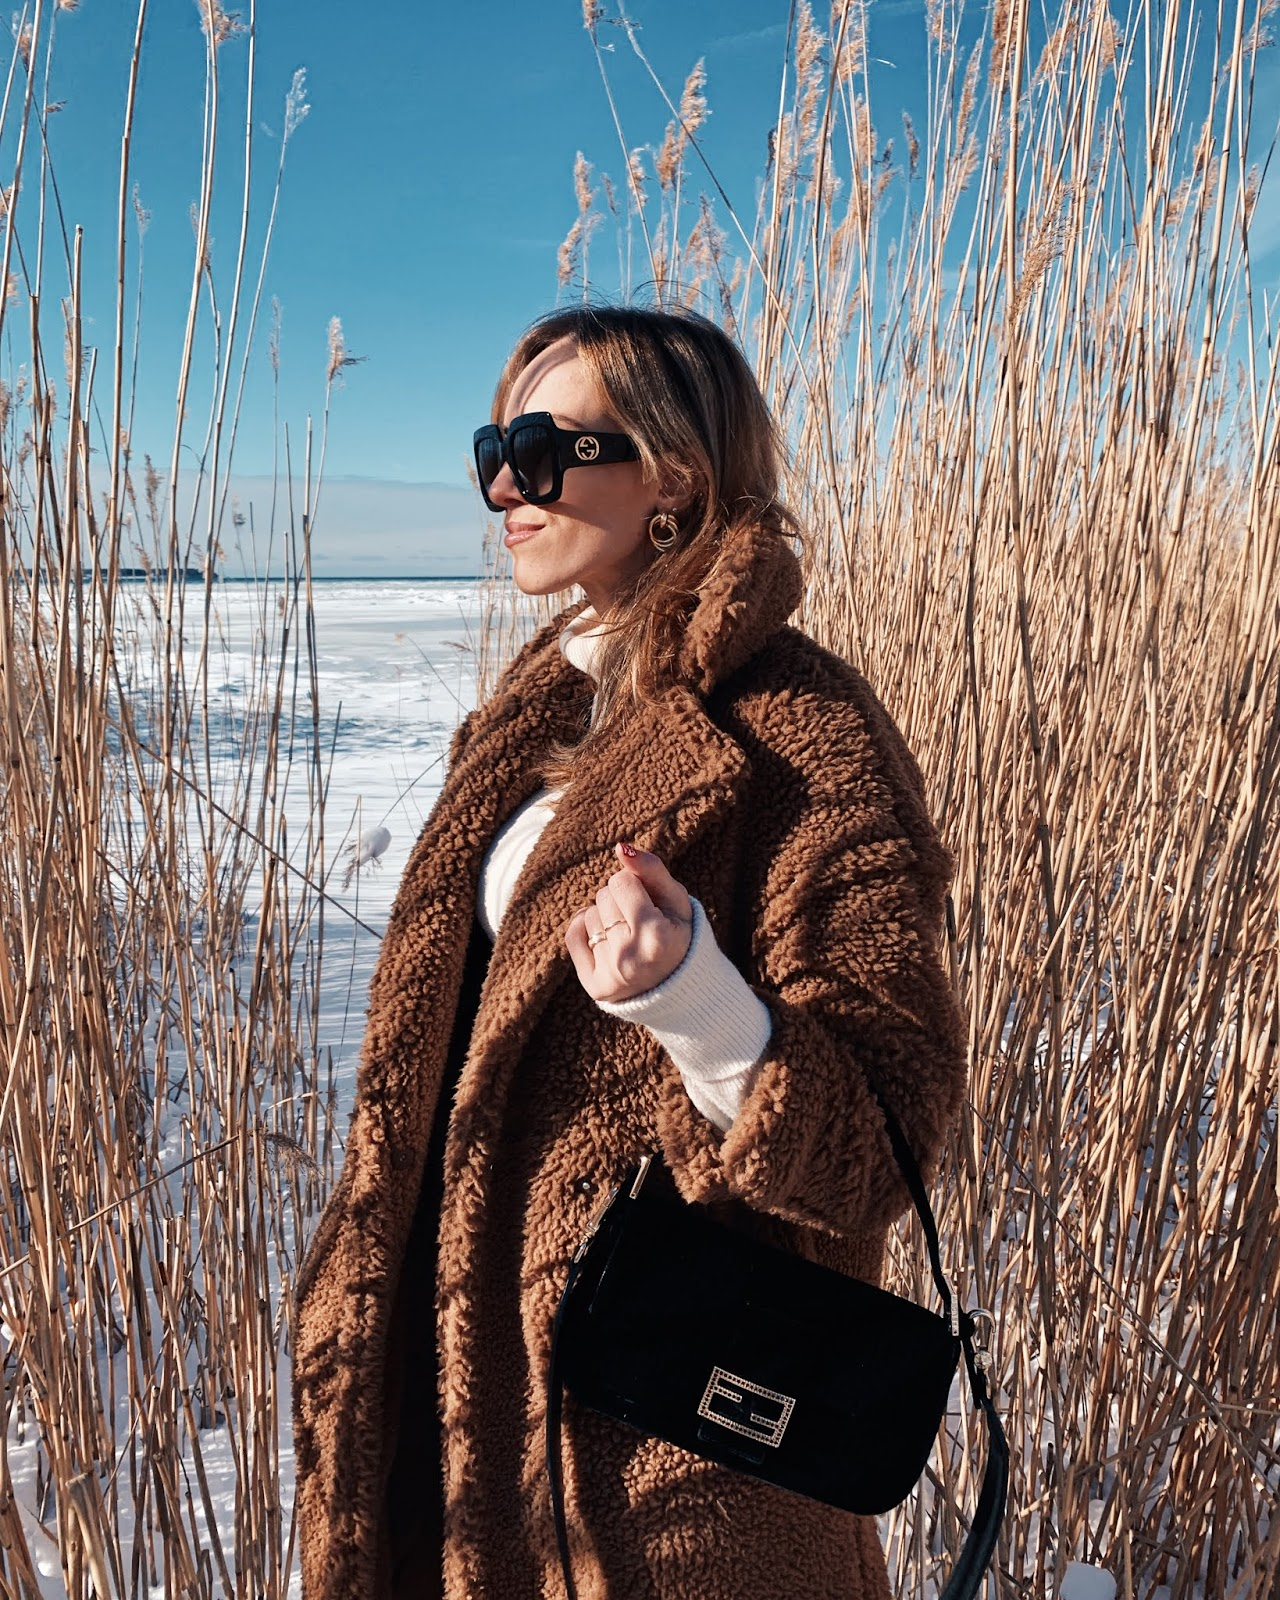 teddy coat gucci oversized sunglasses fendi baguette bag outfit